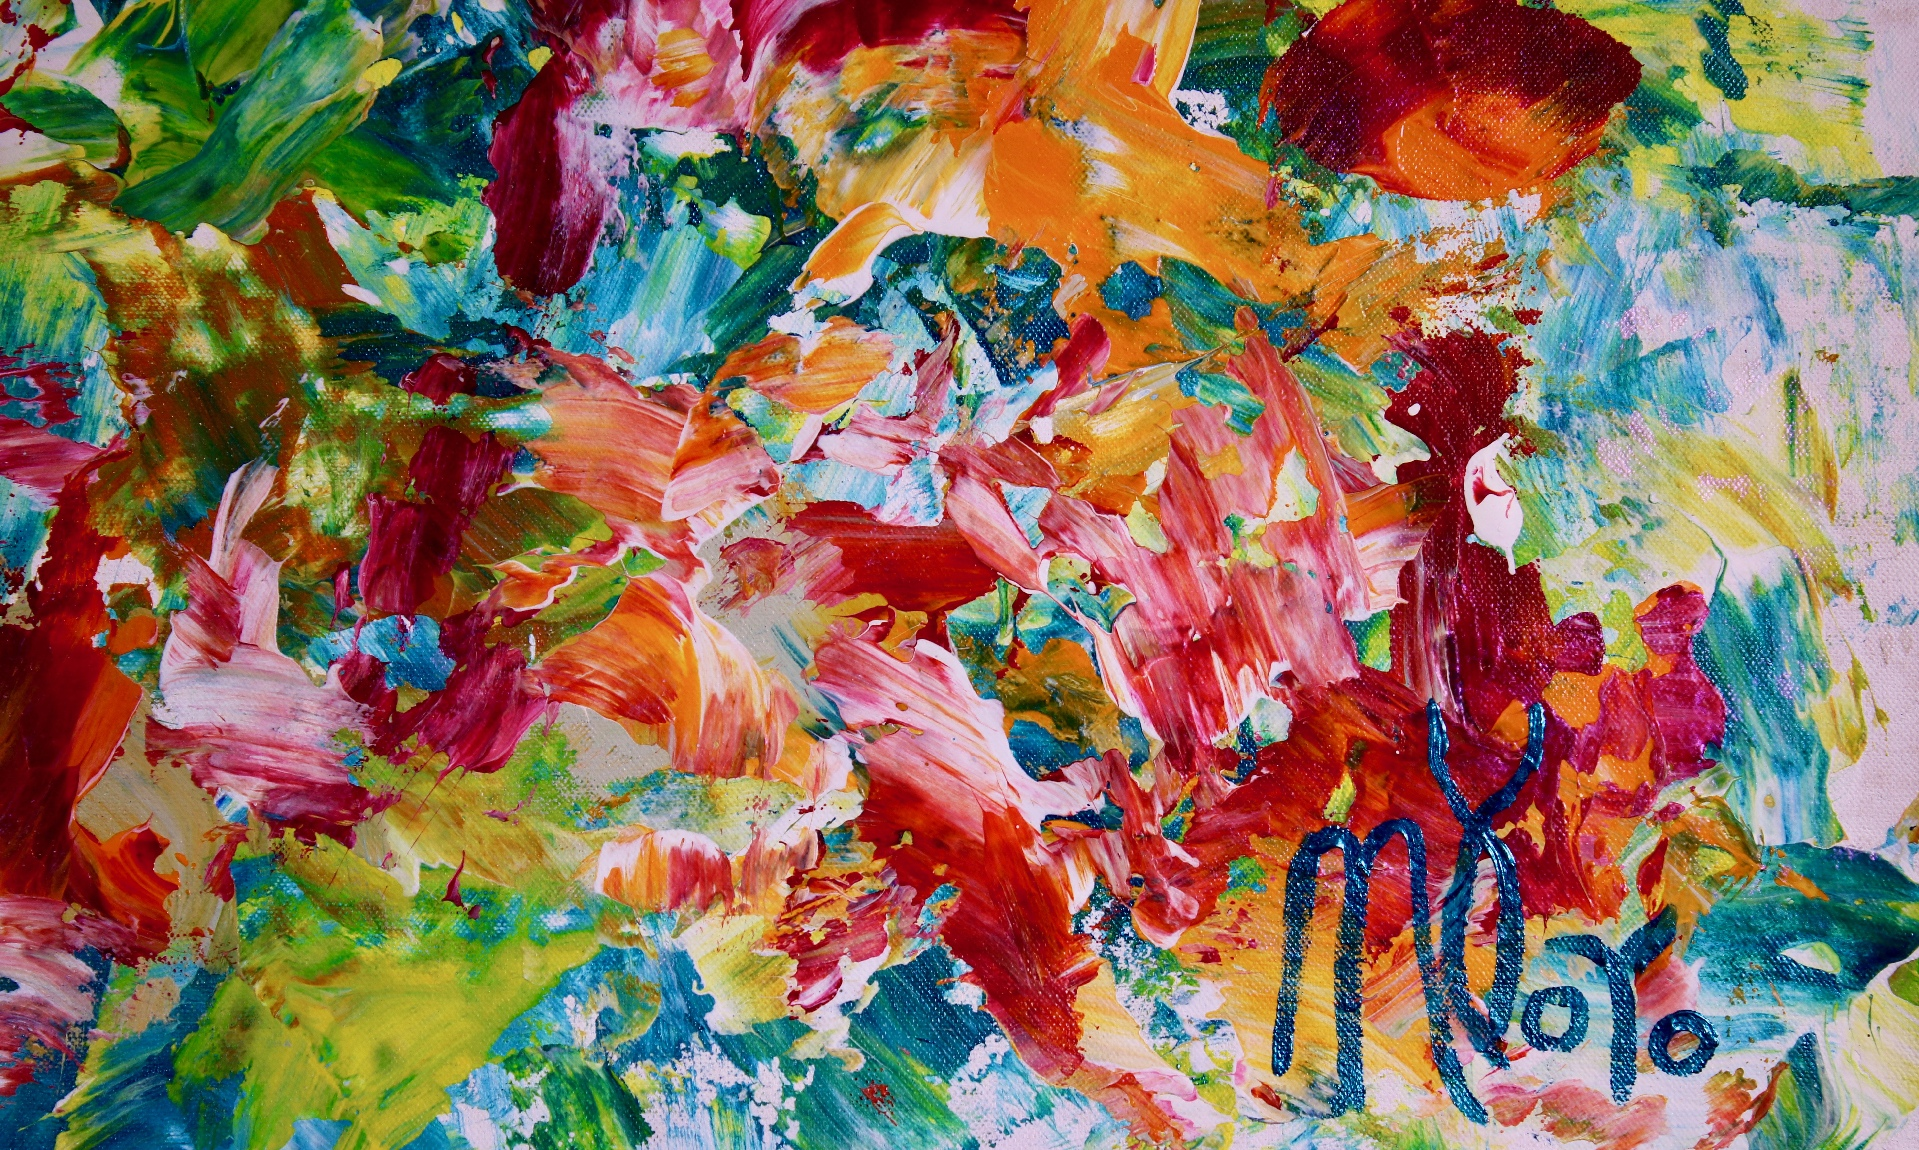 Abstract Expressionist Acrylic painting by Nestor Toro